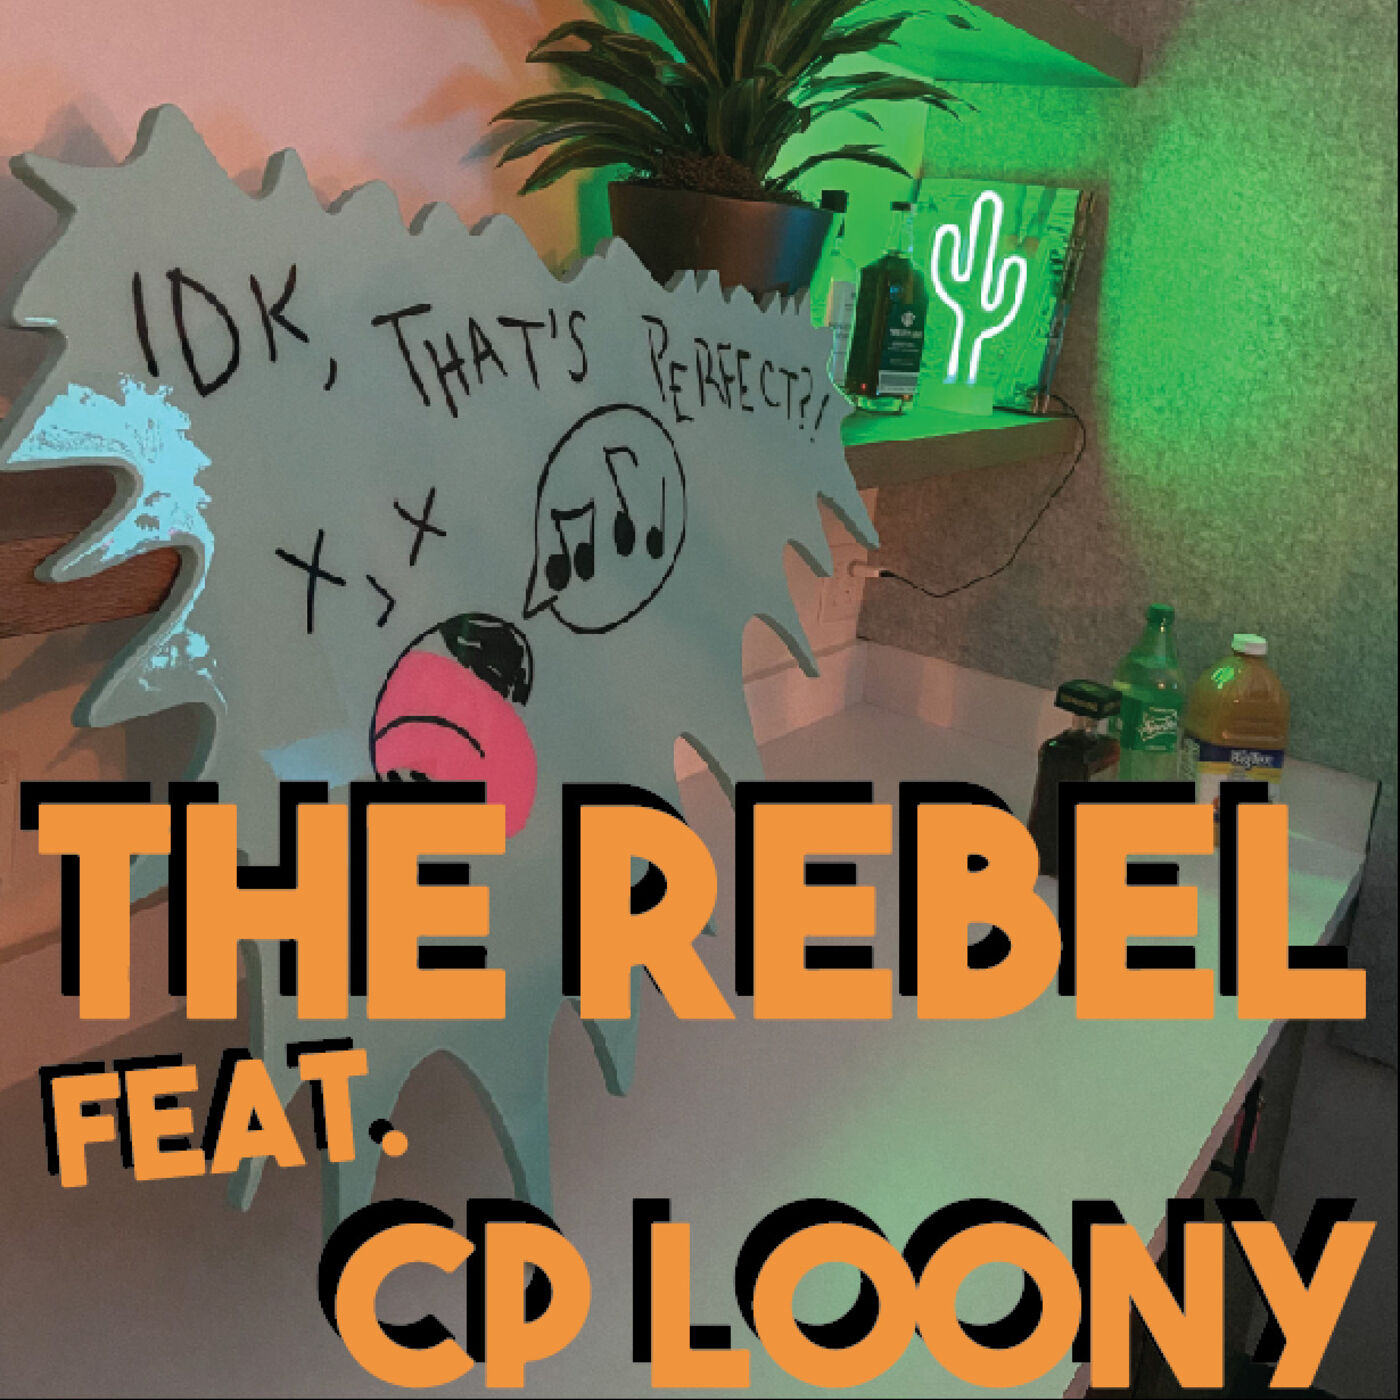 IDK, That's The Rebel Feat. CP Loony?!